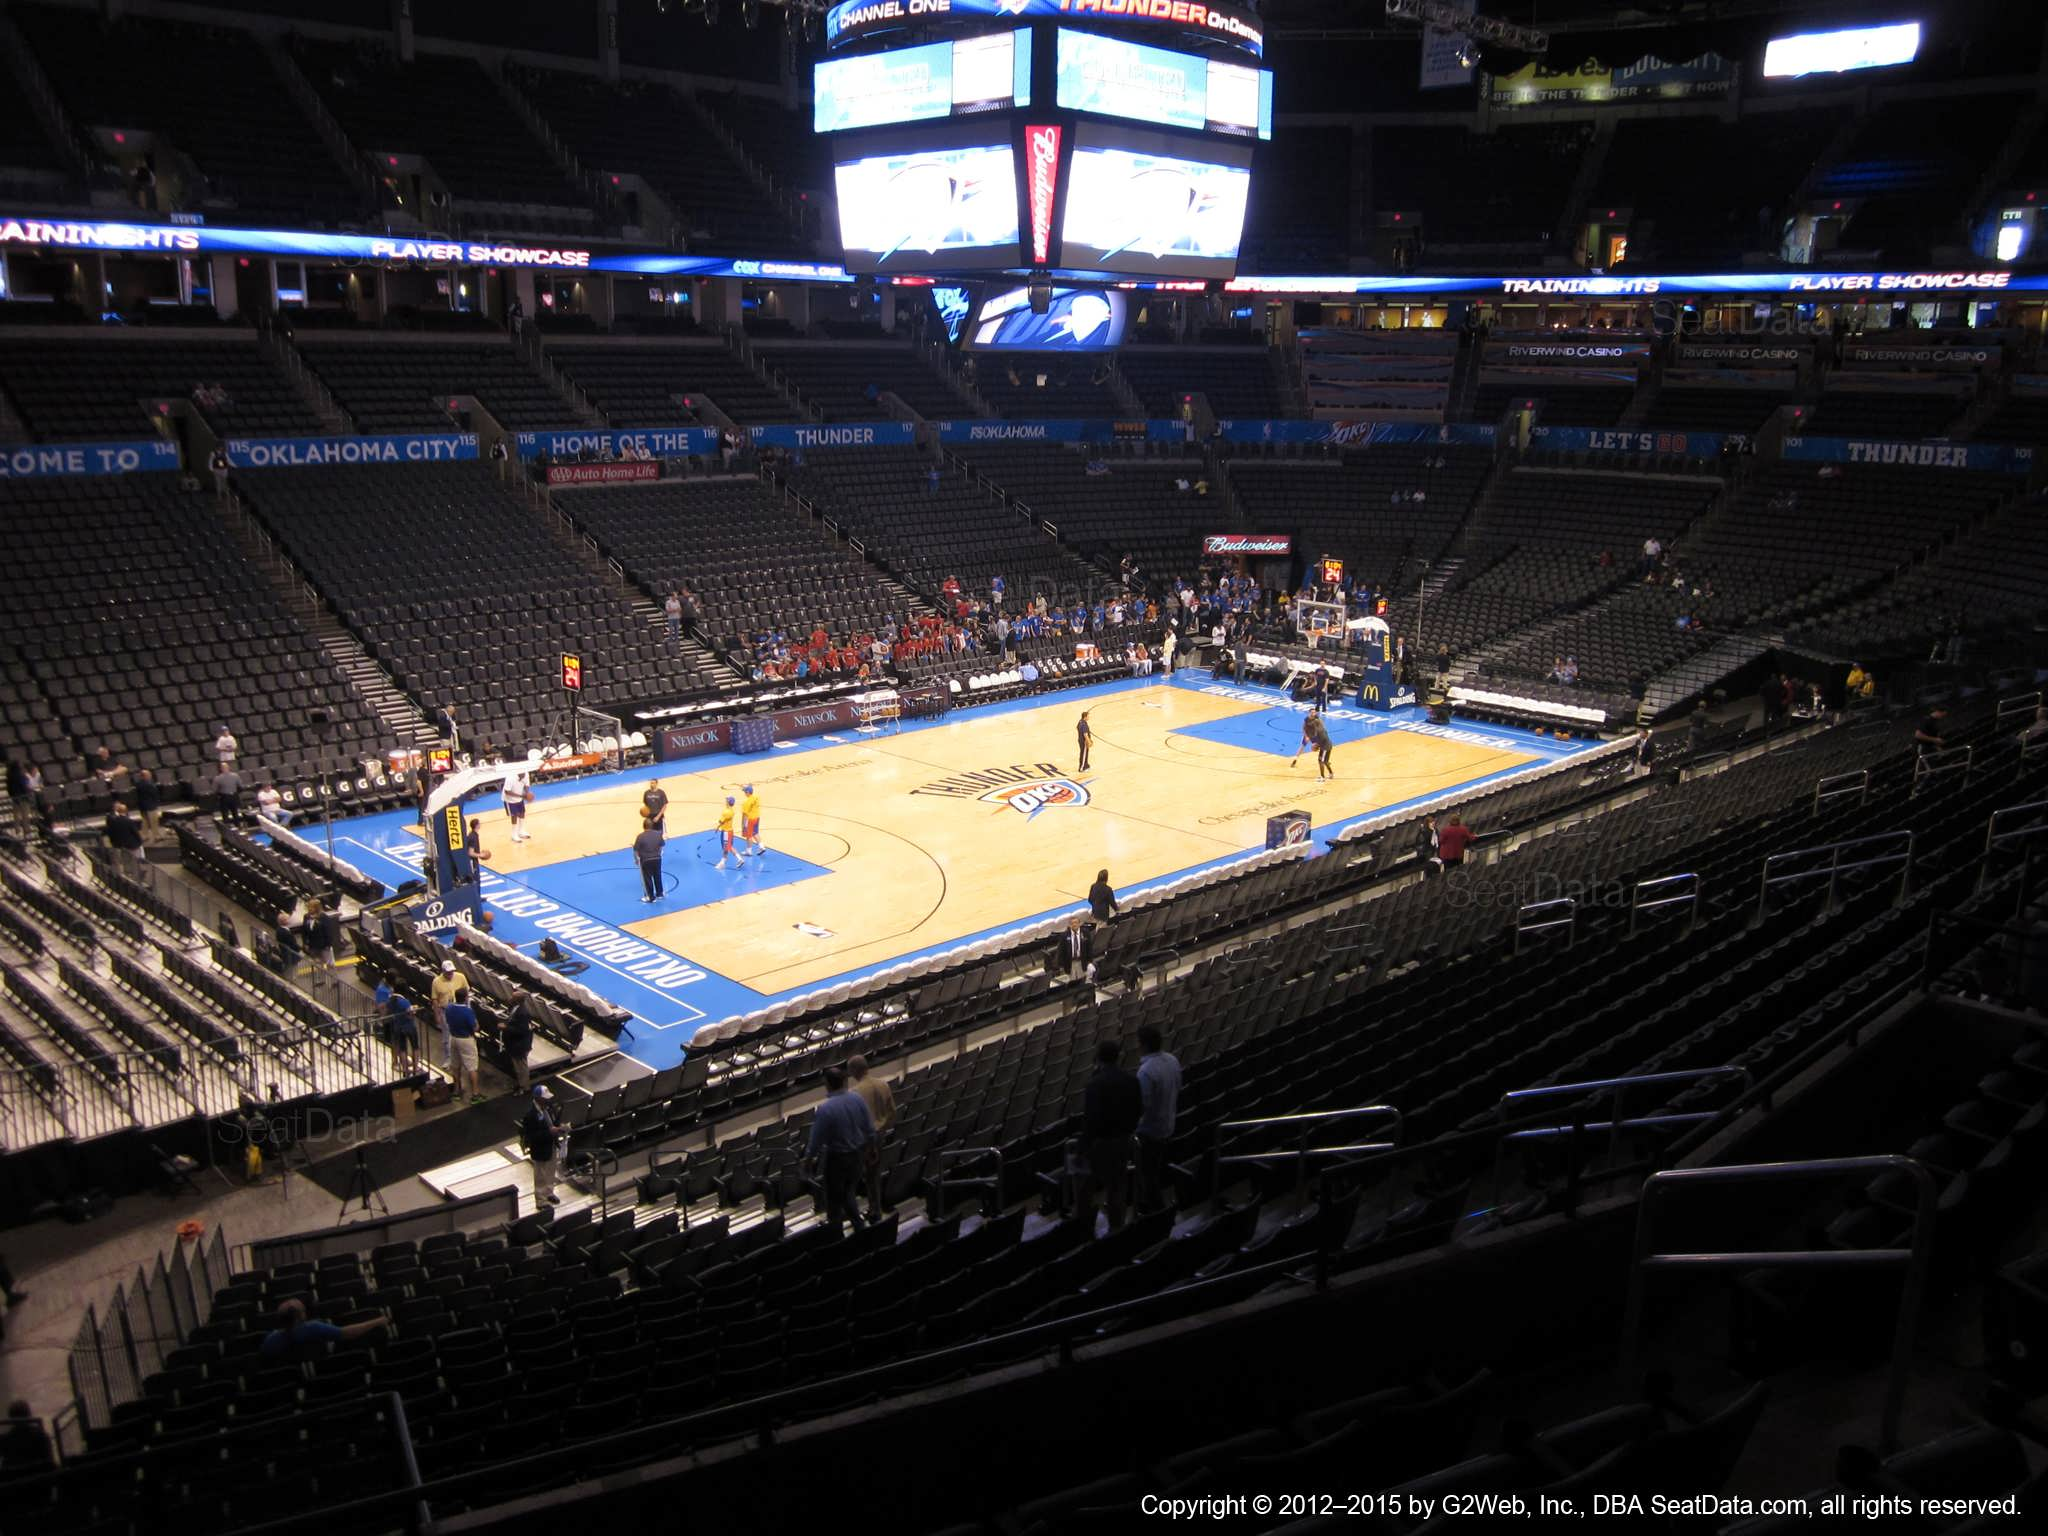 Seat view from section 211 at Chesapeake Energy Arena, home of the Oklahoma City Thunder